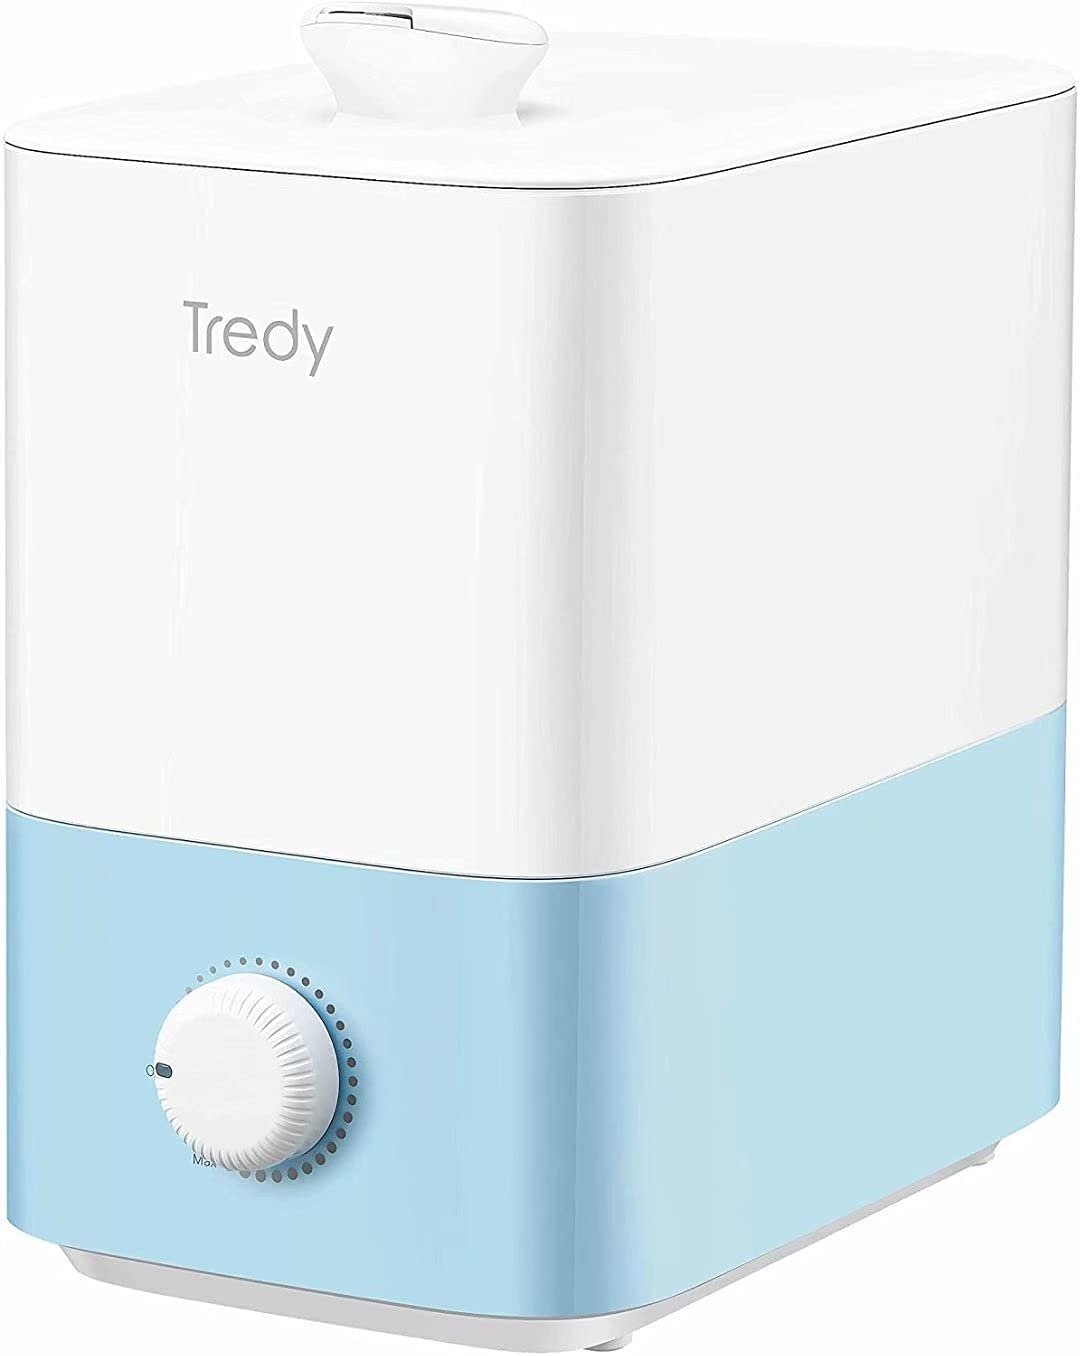 Tredy Humidifiers Low Kansas City Mall price for Bedroom Large Top 5L Rooms Fill Ultrasonic